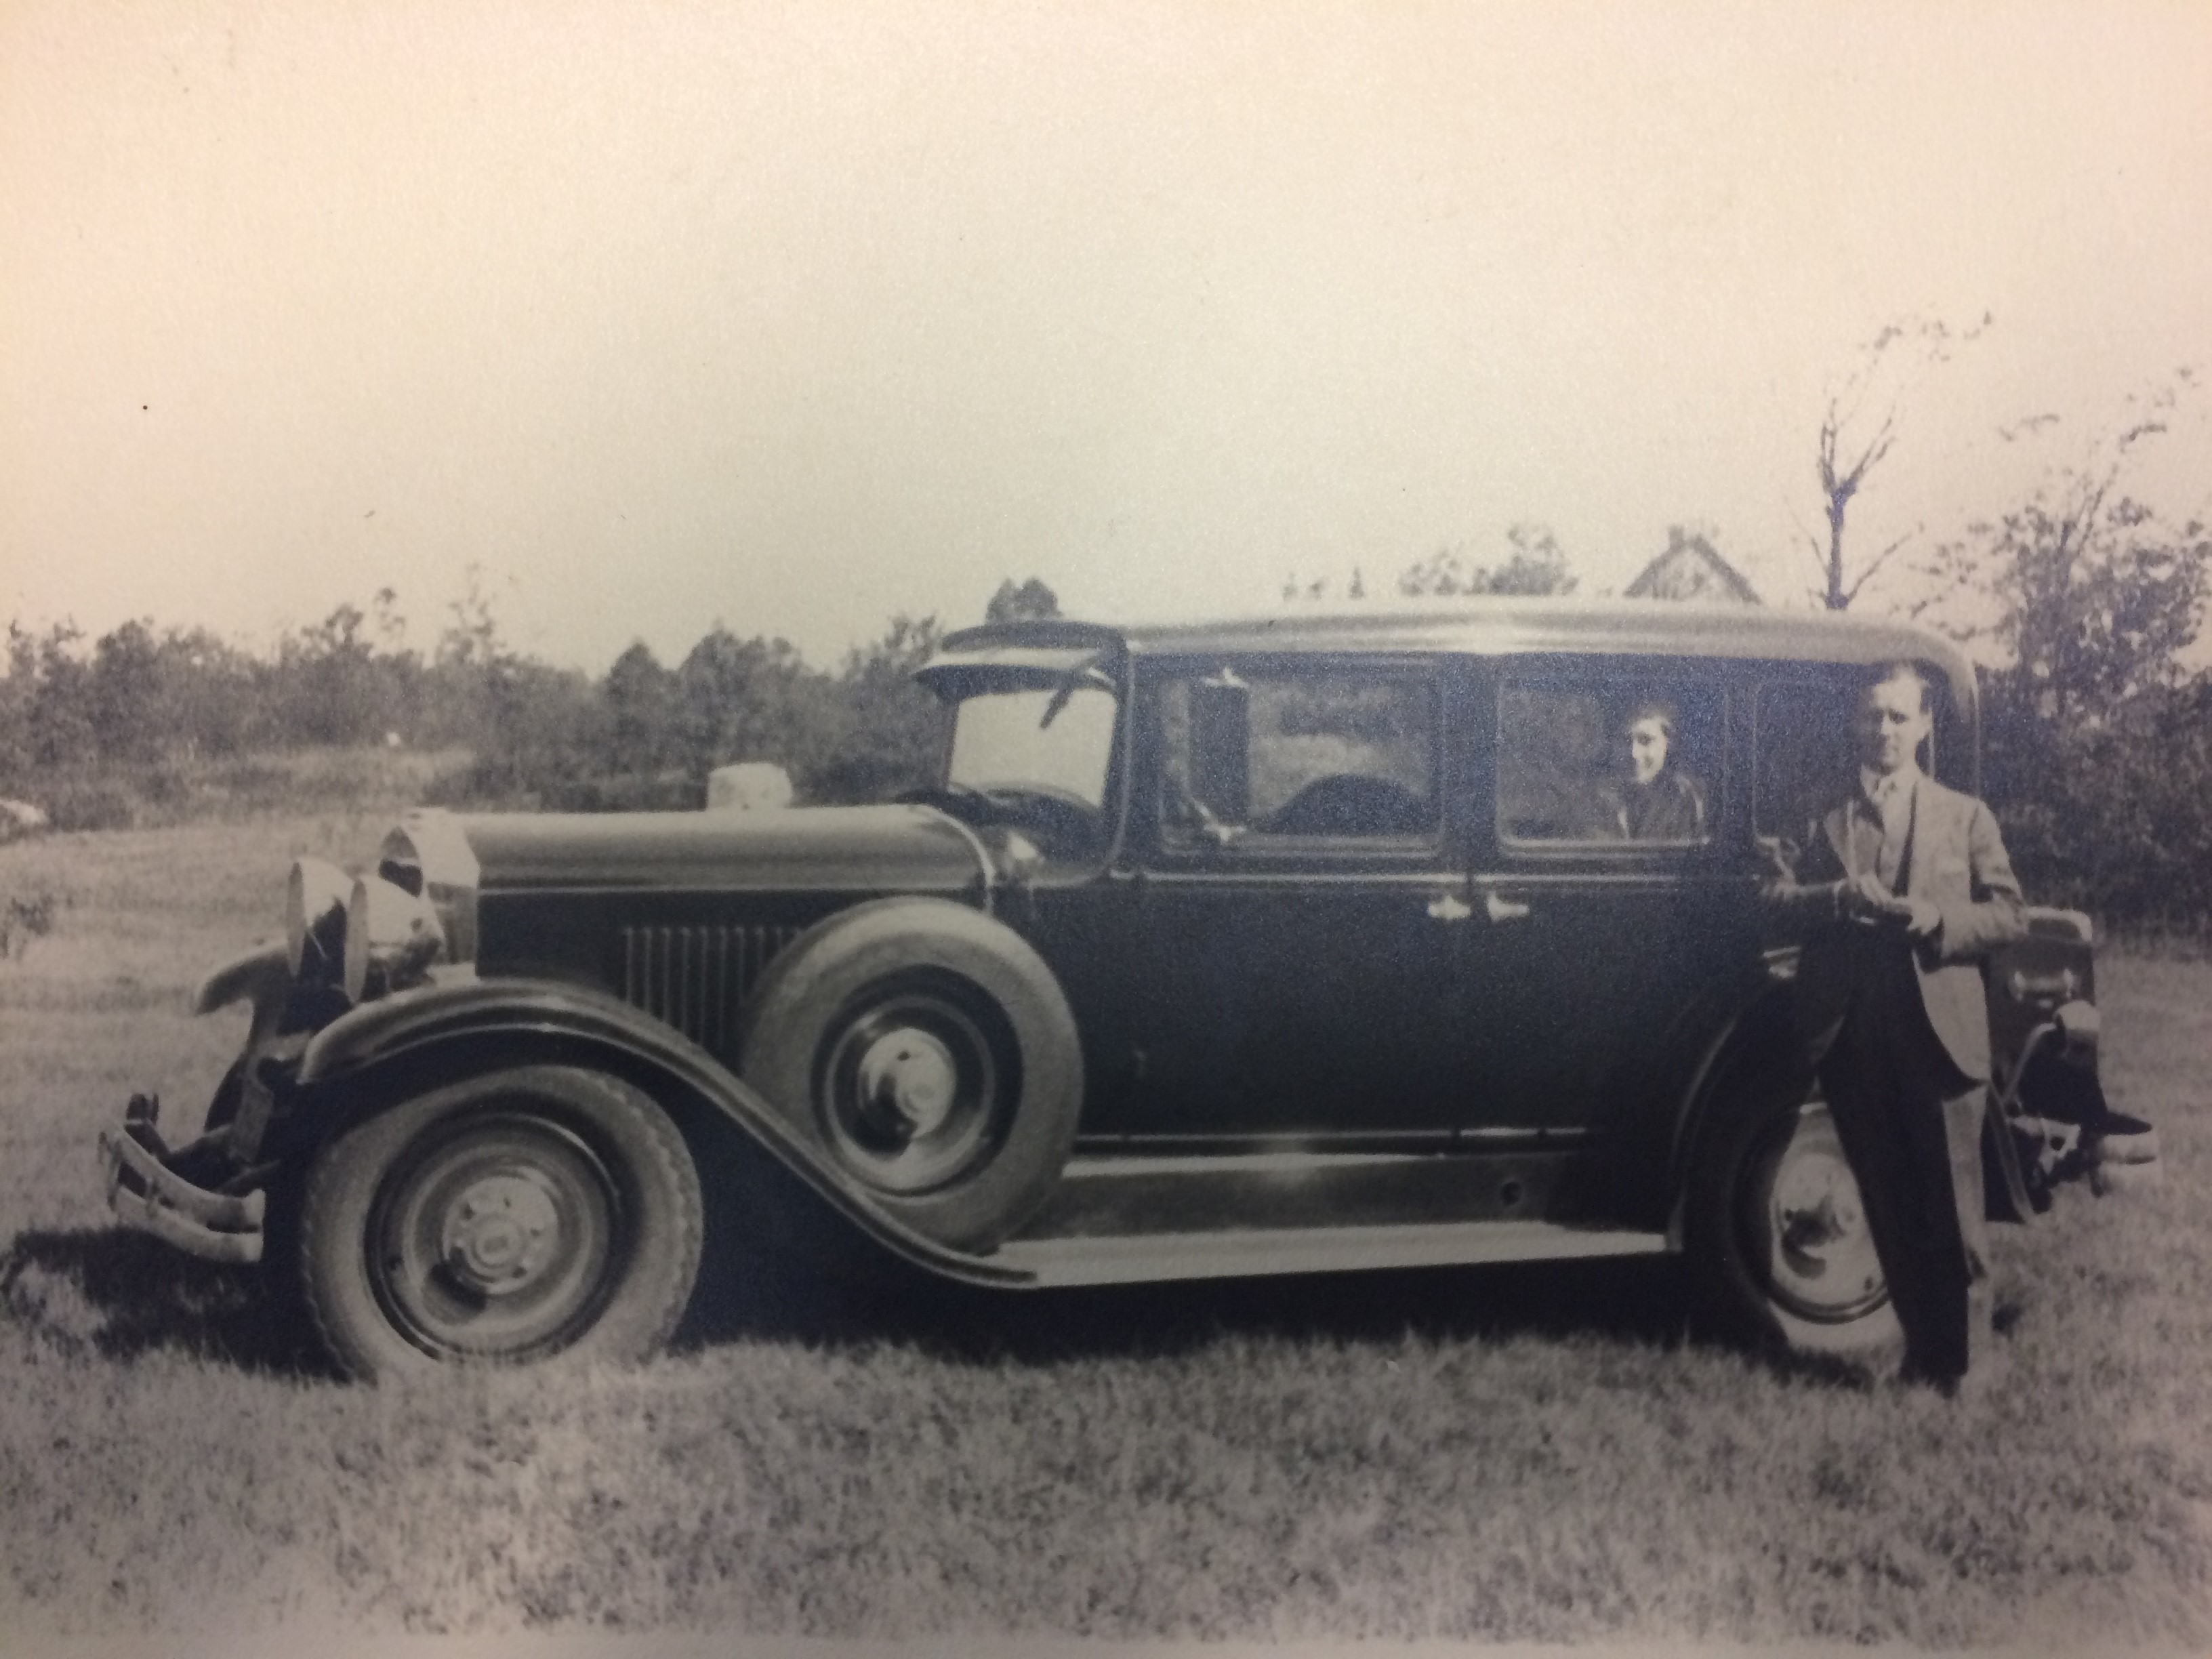 1930 Hupmobile? - What is it? - Antique Automobile Club of America ...